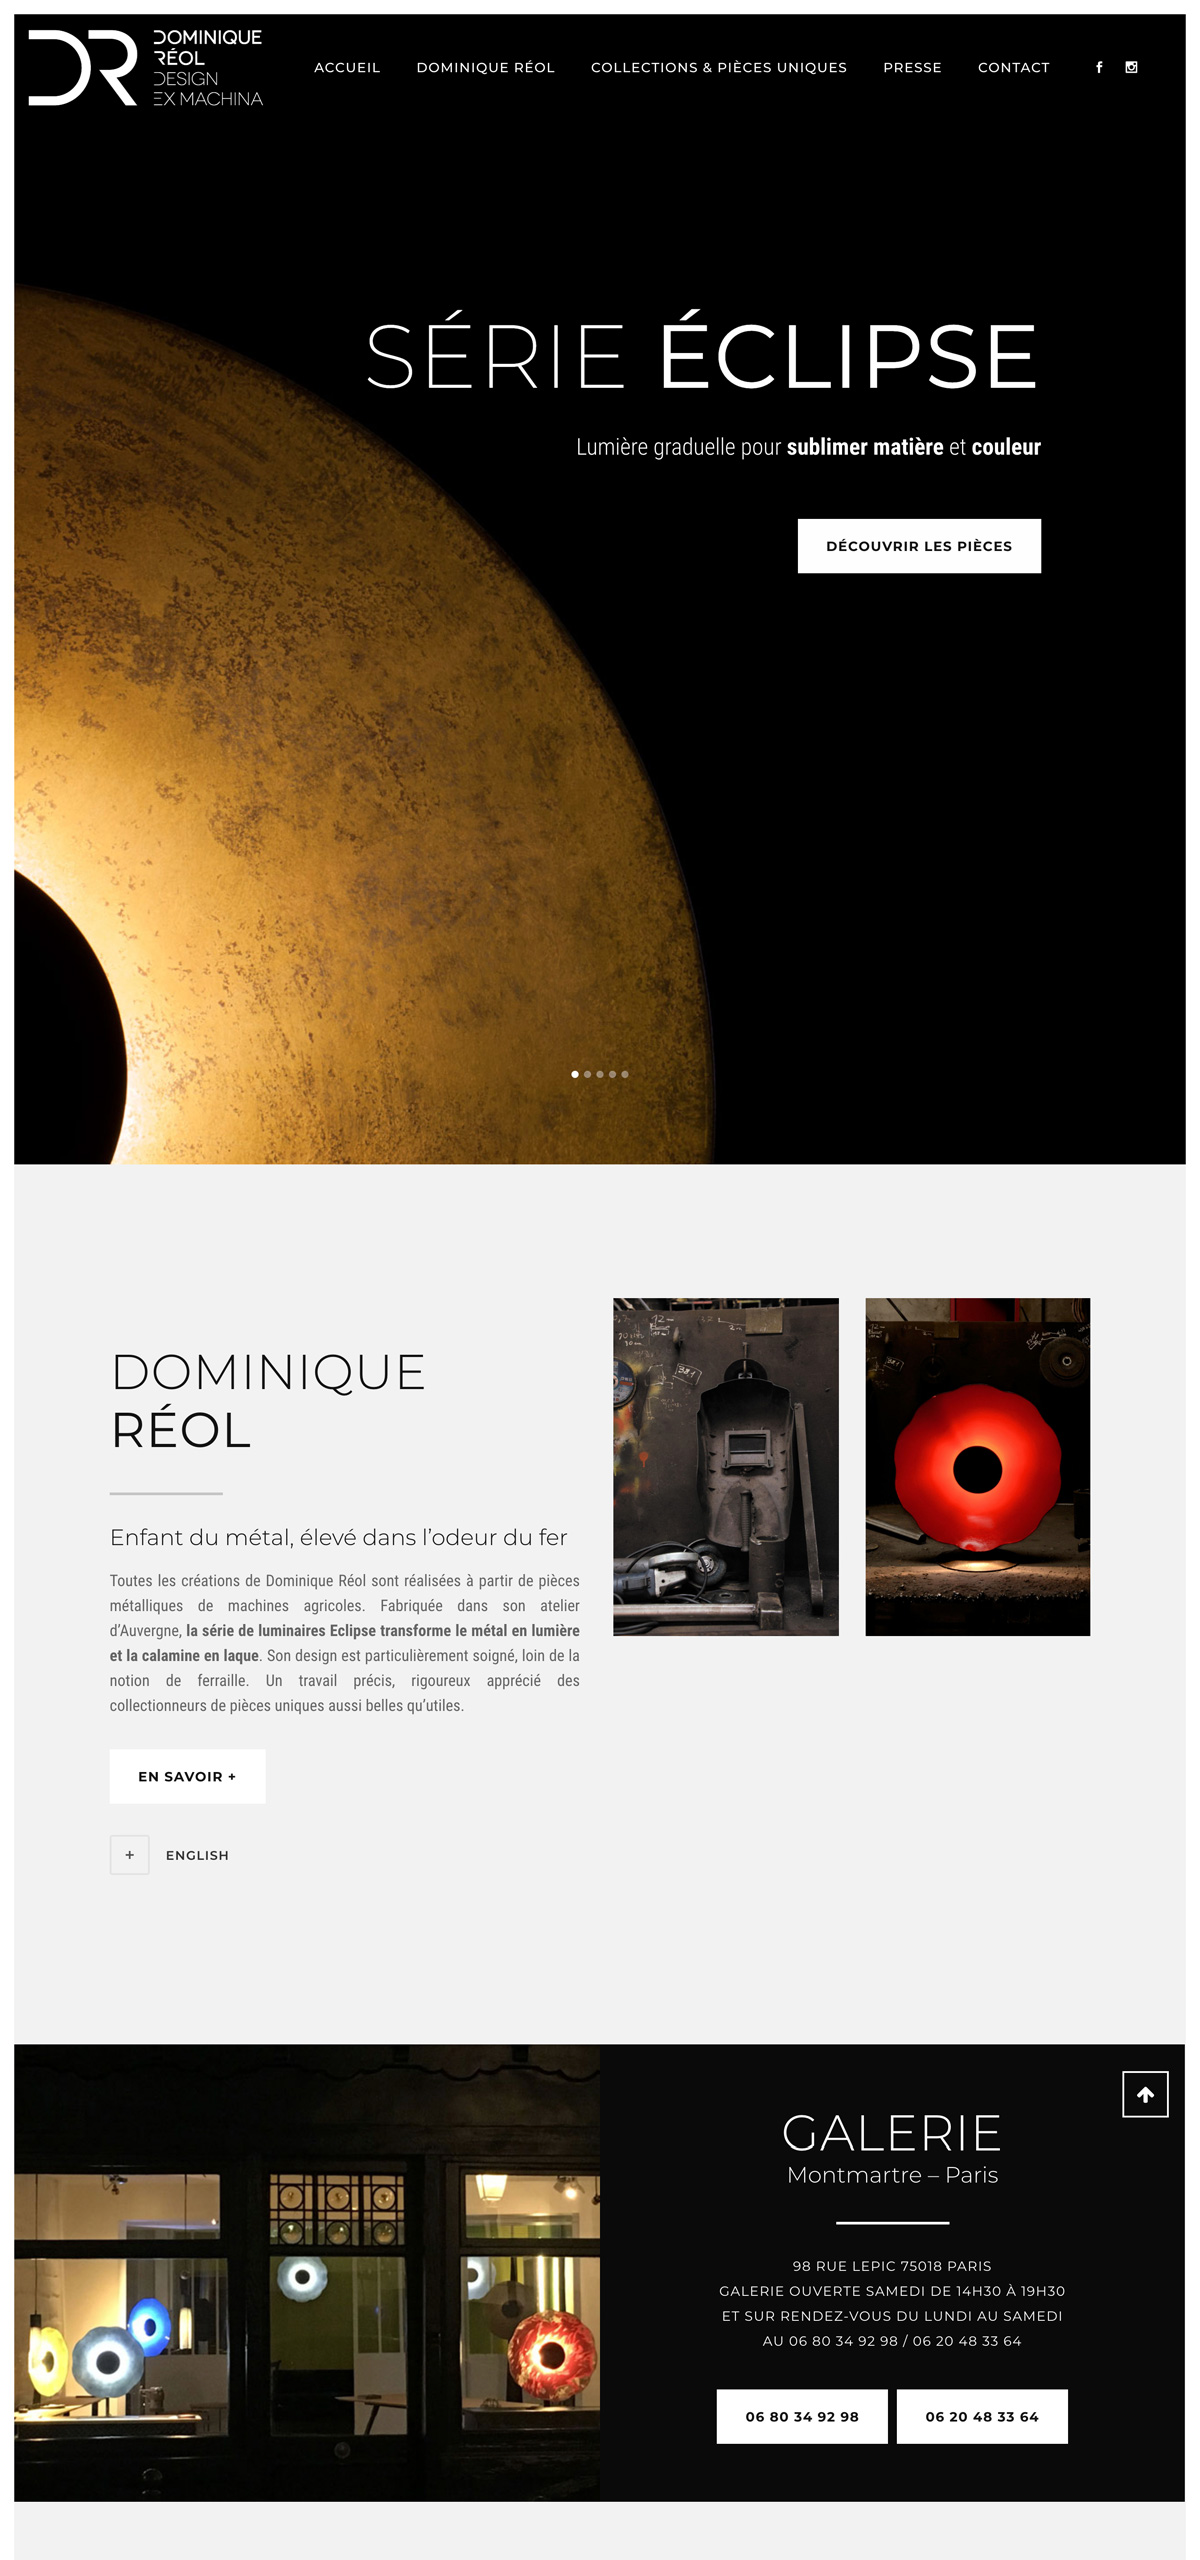 rdsc dominique reol website screenshot